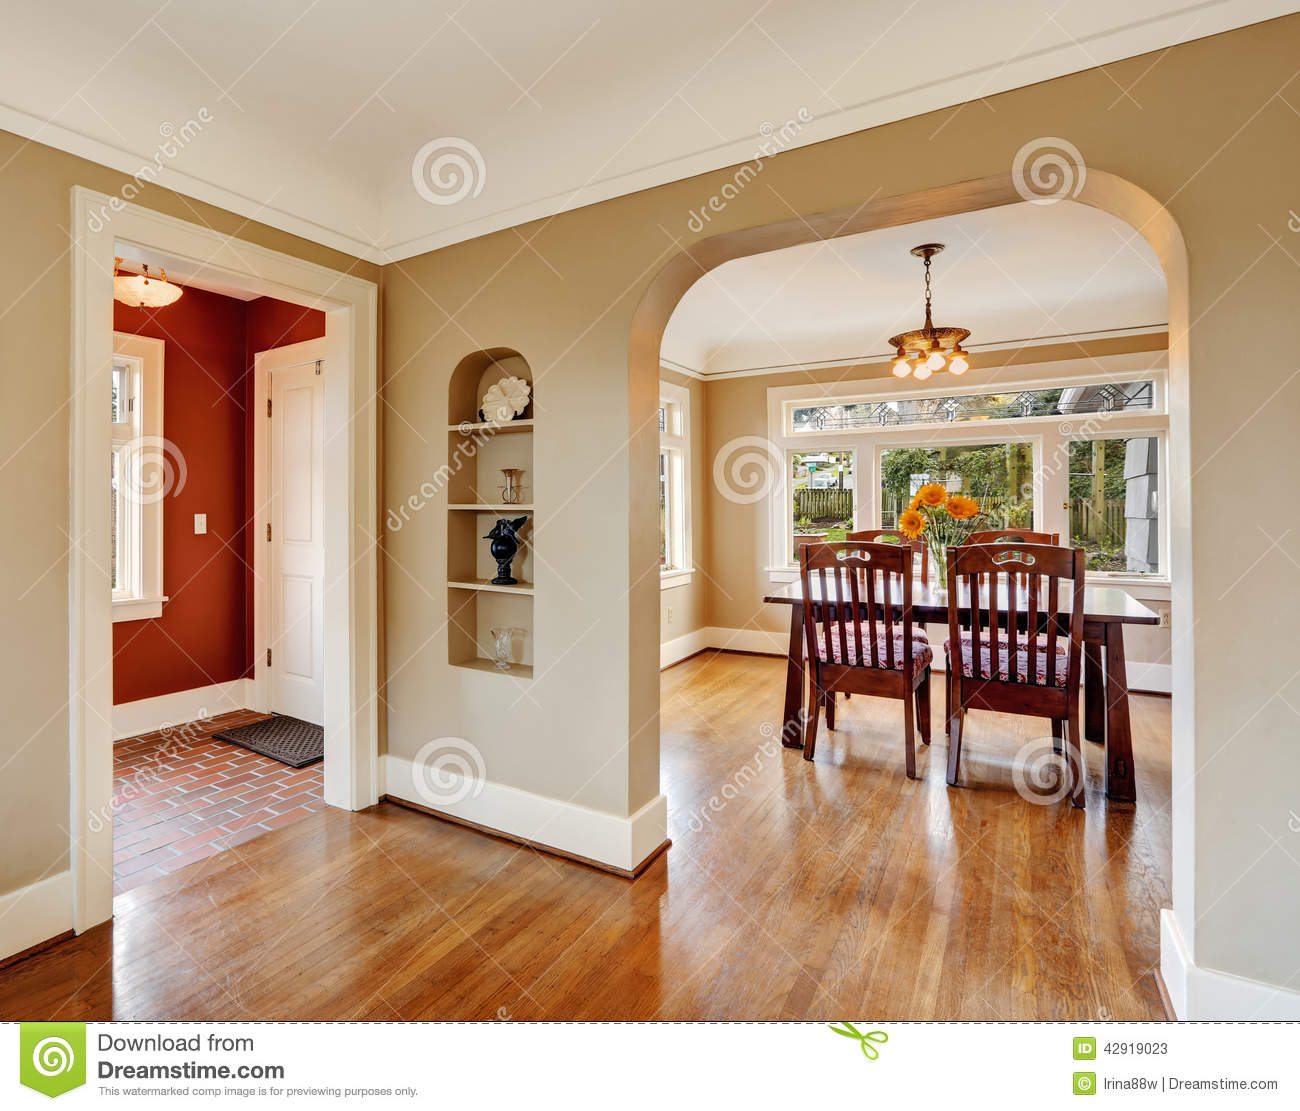 House Interior. View Of Dining Area Entrance Hall Stock